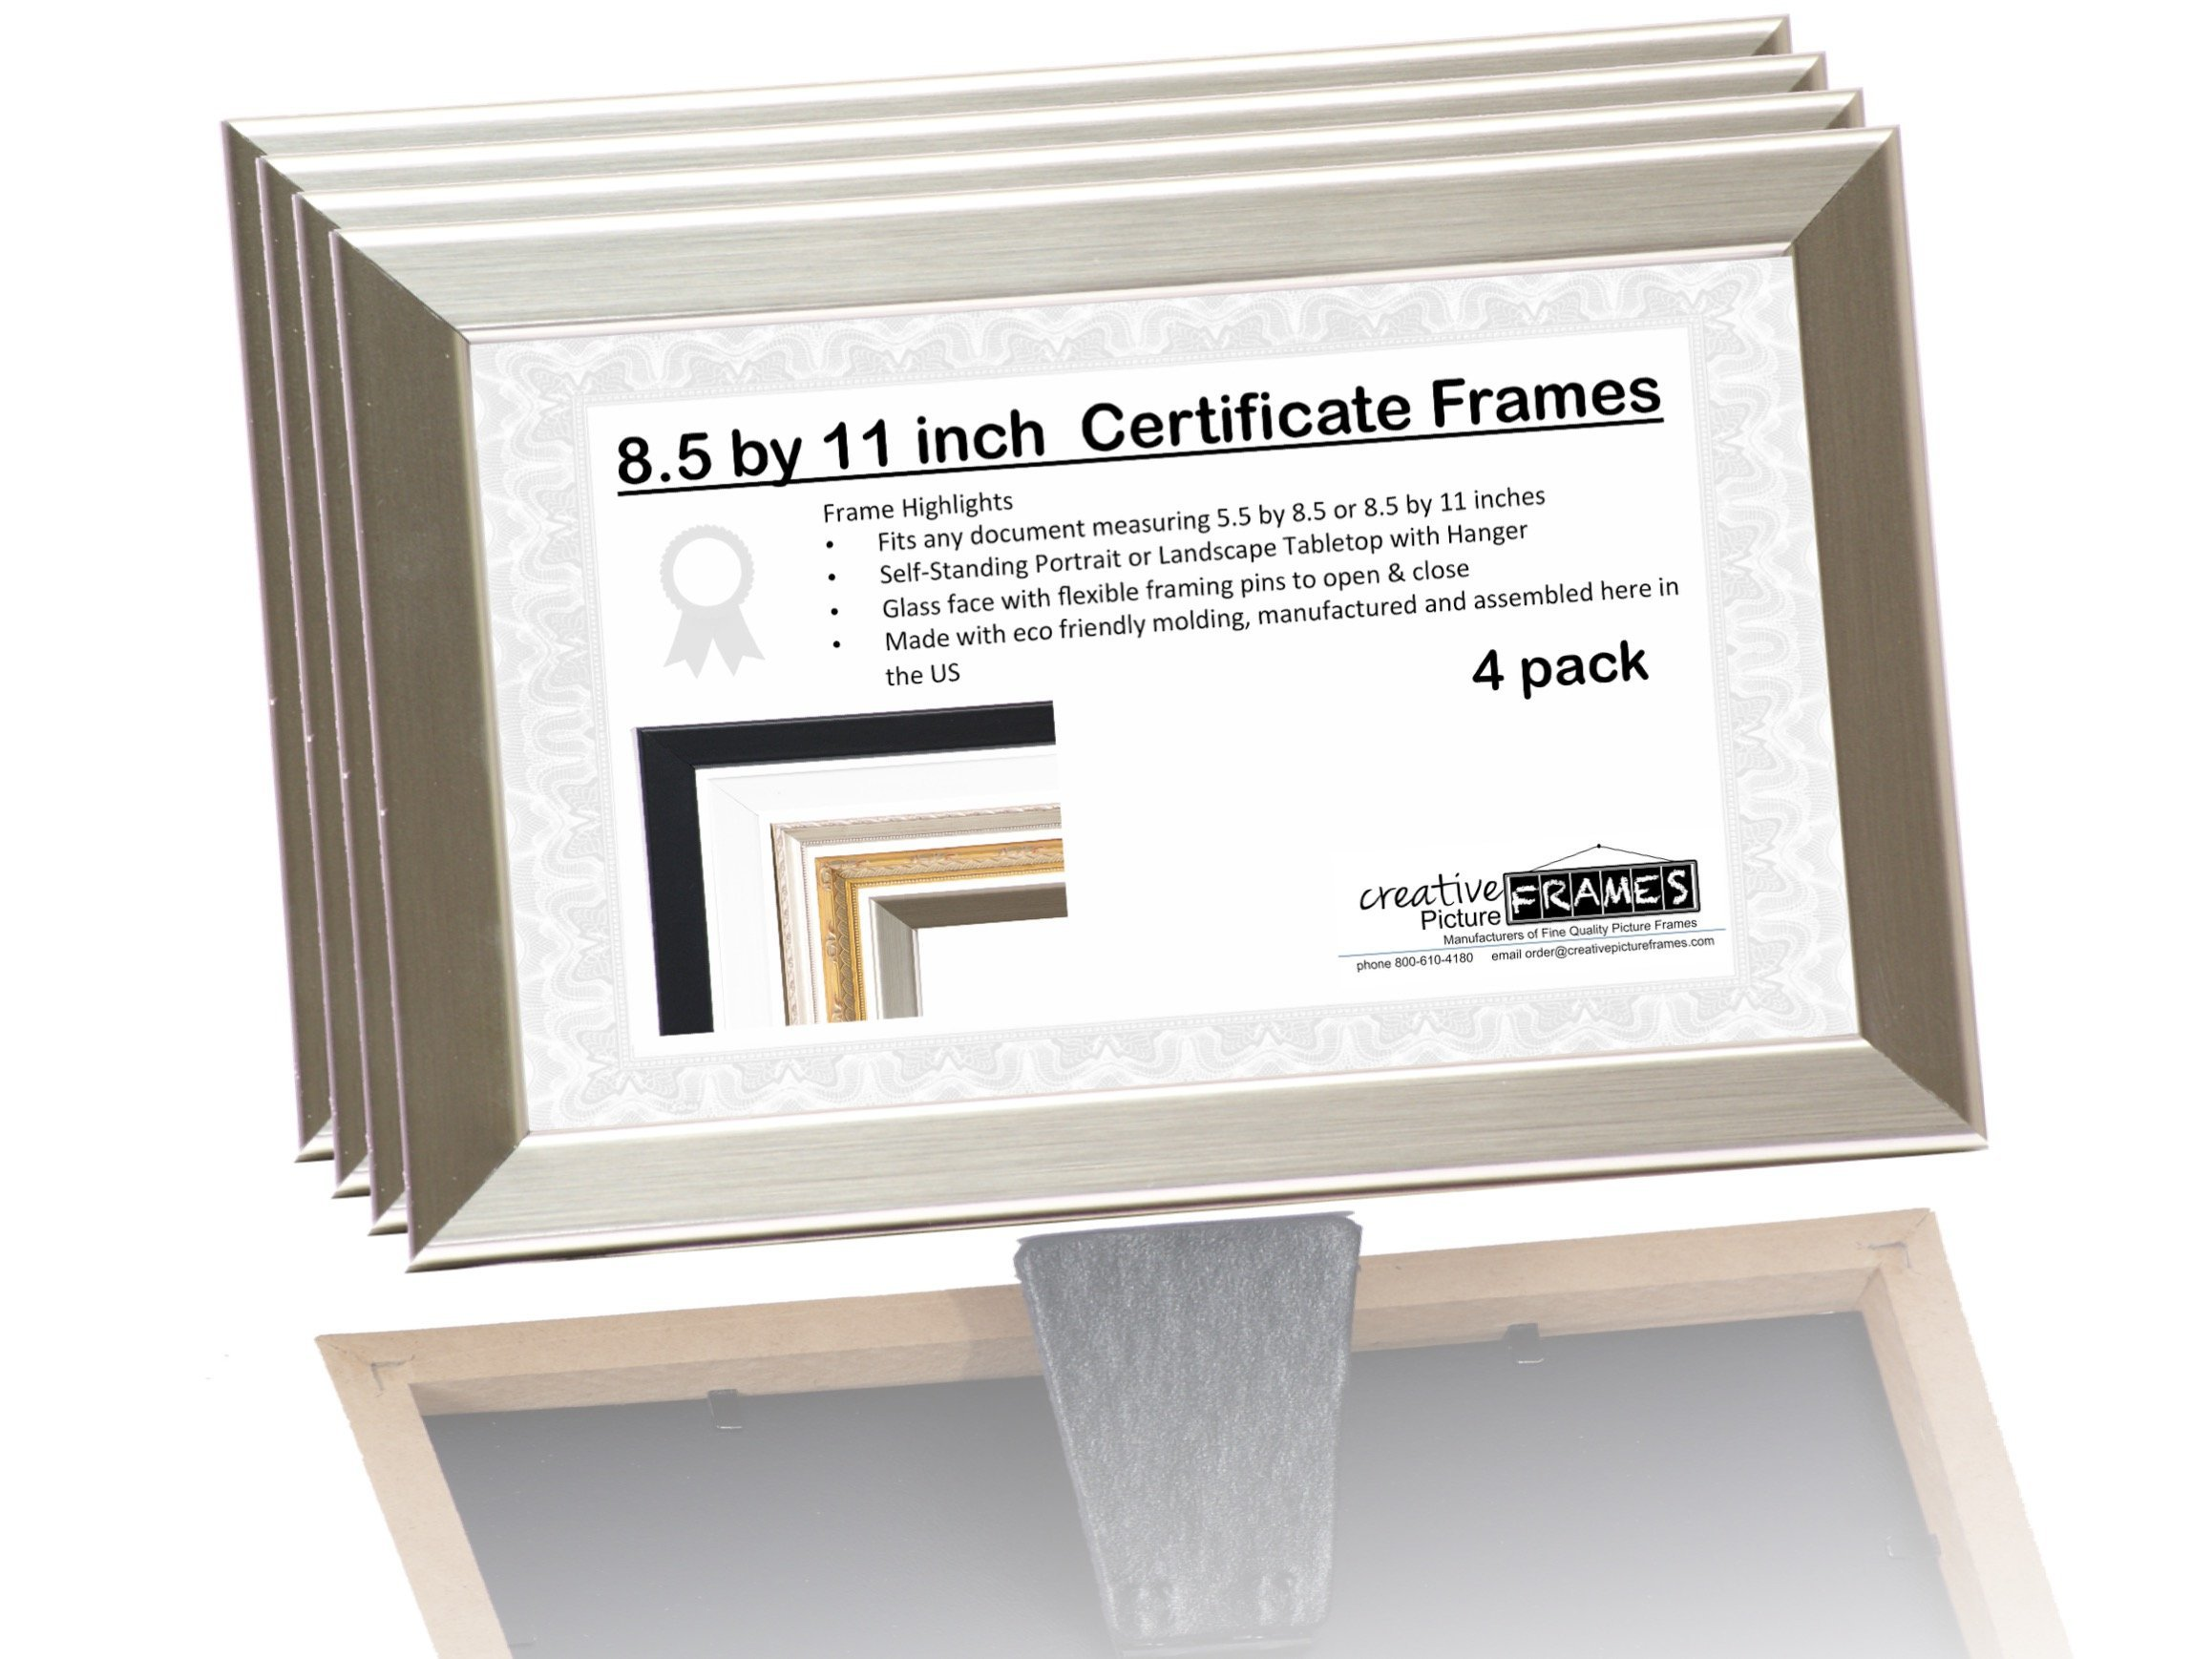 8.5x5.5 or 5.5x8.5 inch Professional Stainless Steel Business License Certificate Frame, Self Standing Portrait or Landscape with Wall Hanger (4 Pack)